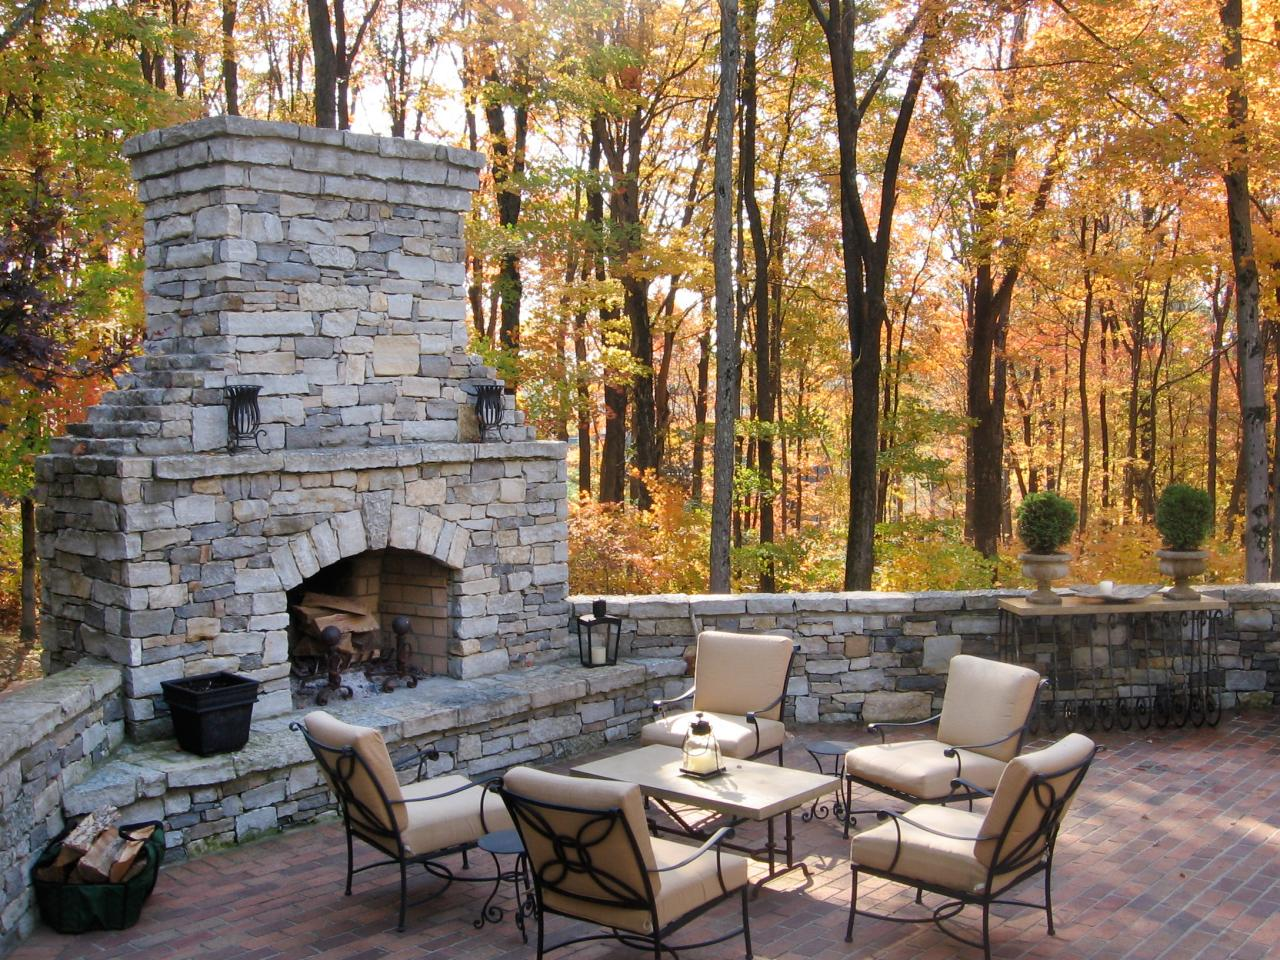 Outdoor decorating ideas outdoor spaces patio ideas for Outdoor patio fireplace ideas